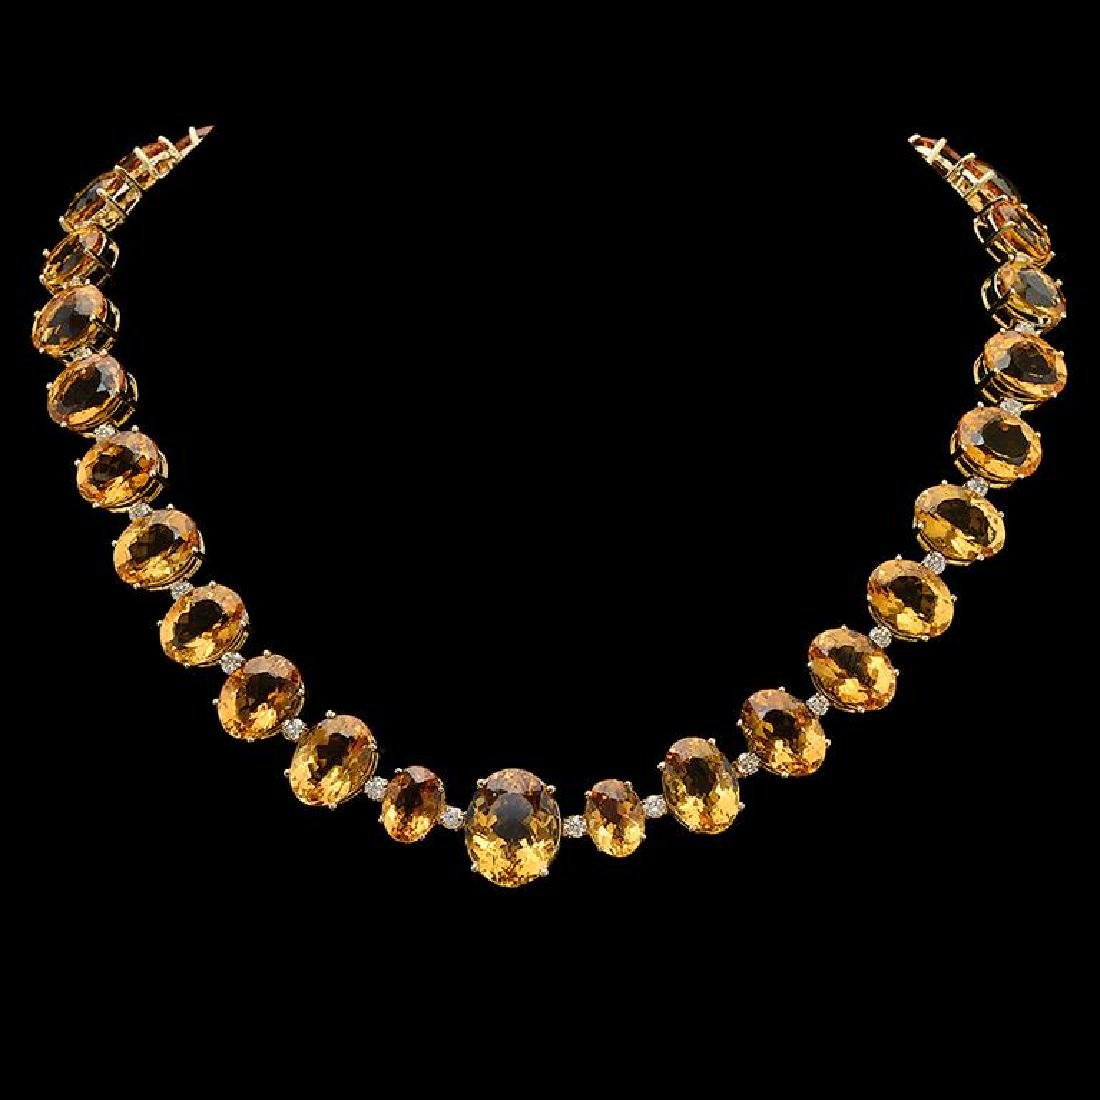 14K Gold 152.53ct Citrine & 4.10ct Diamond Necklace